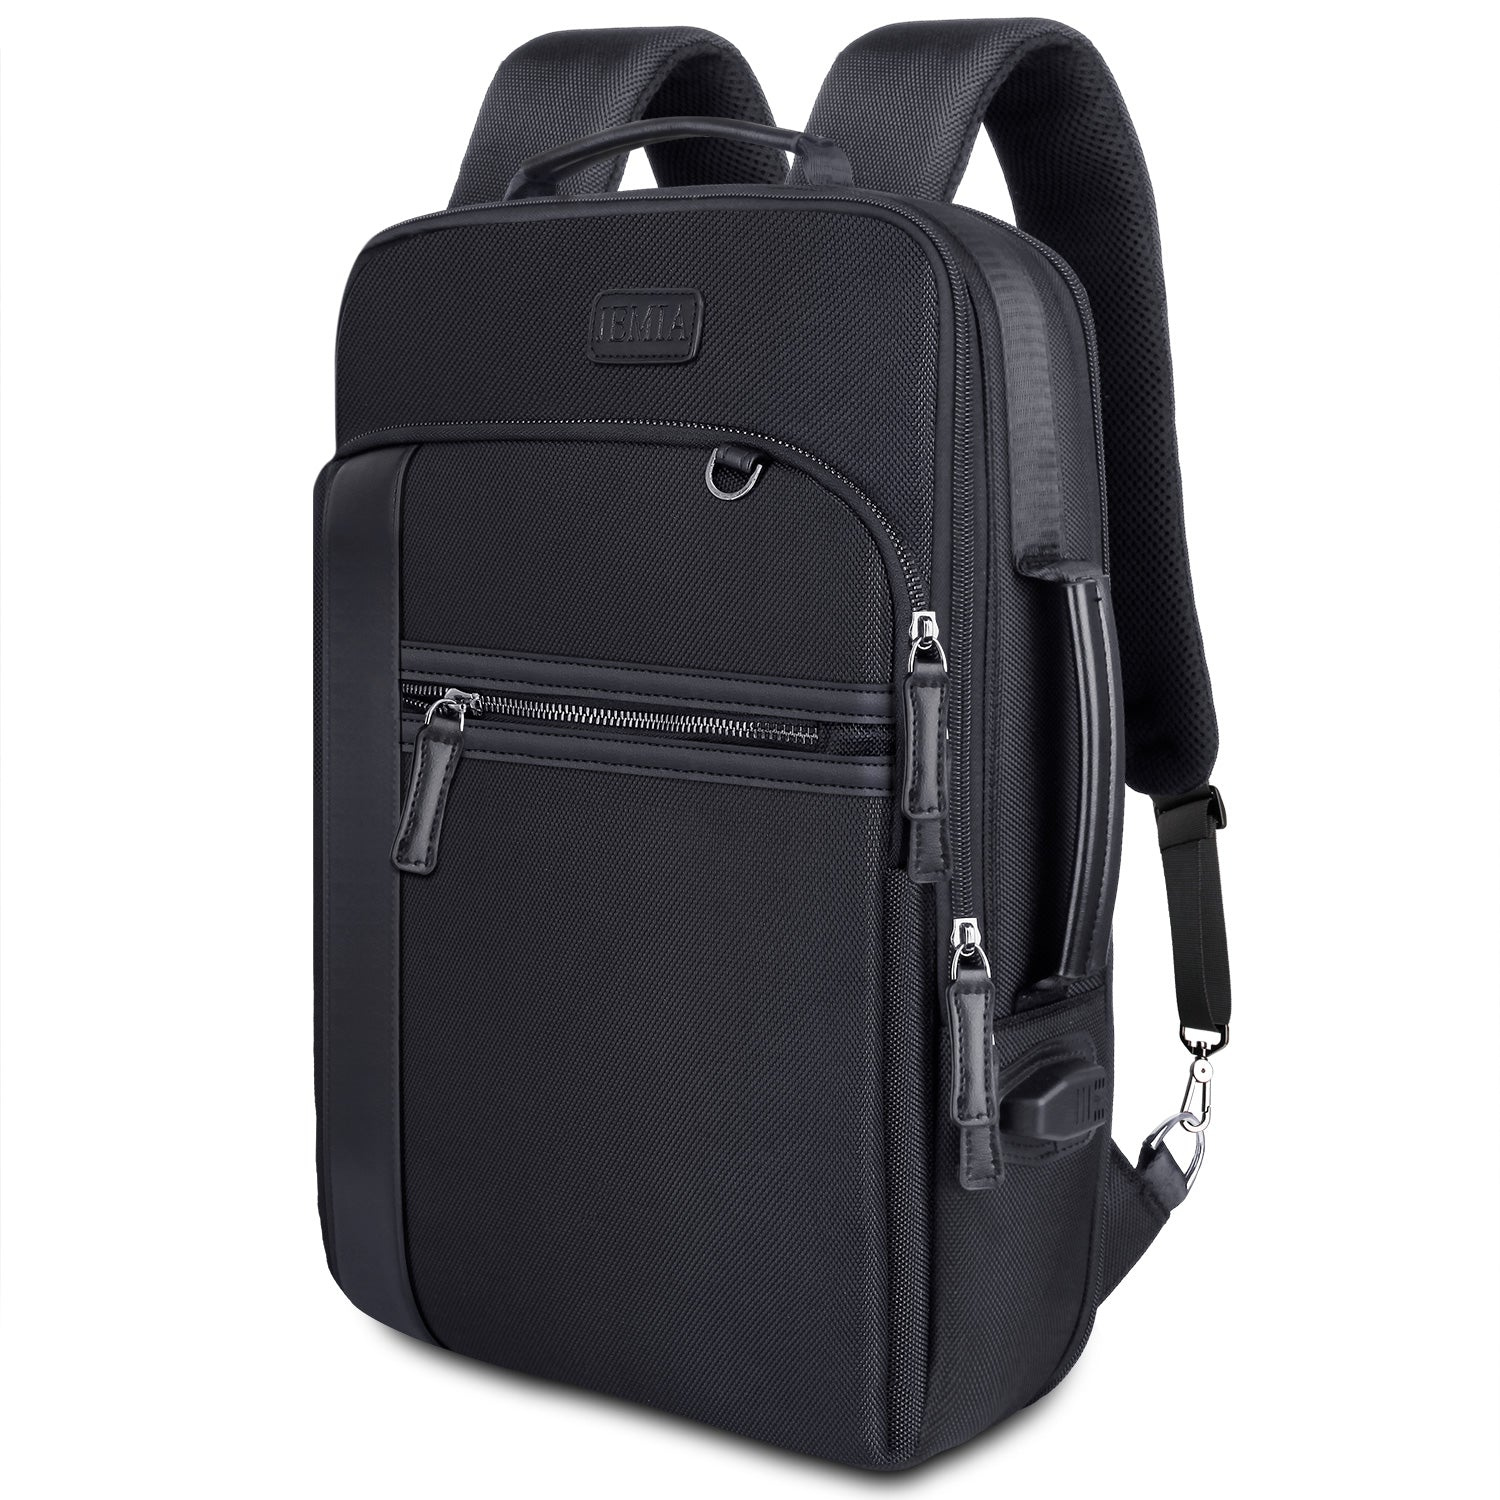 EXPANDABLE BACKPACK WITH USB CHARGING PORT AND LAPTOP COMPARTMENT